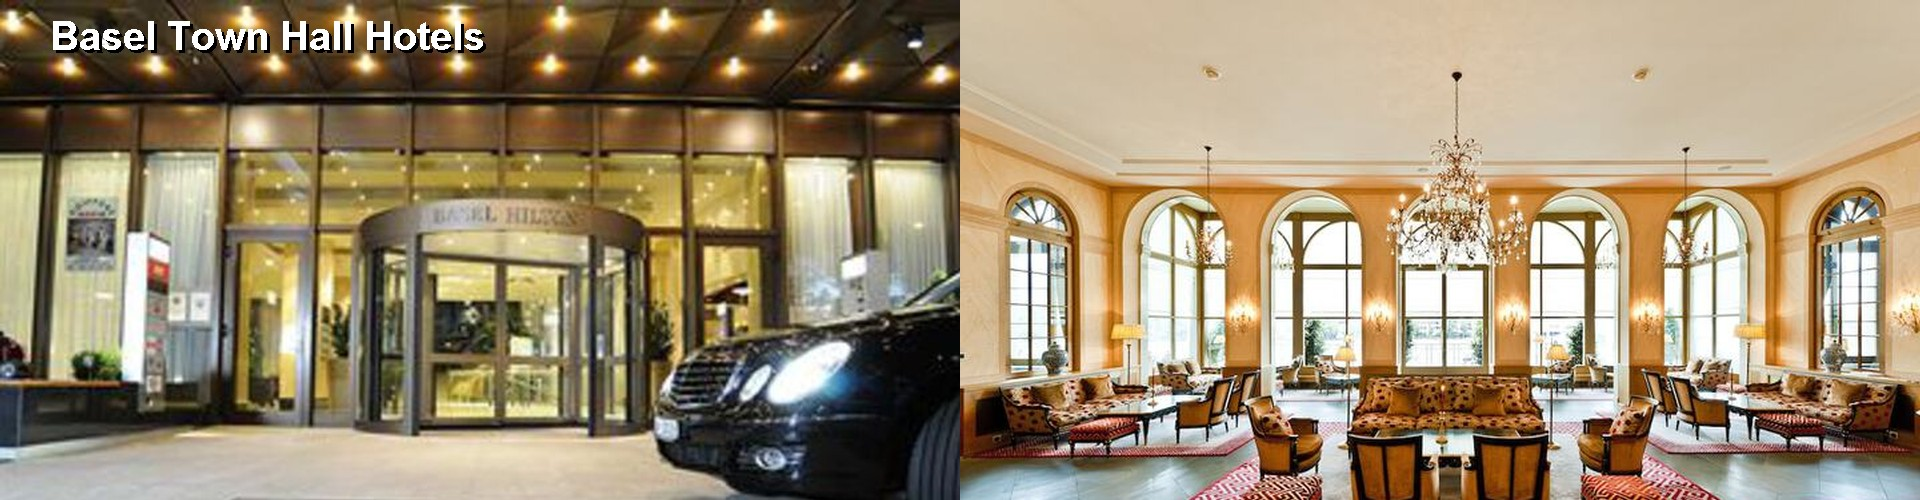 3 Best Hotels near Basel Town Hall